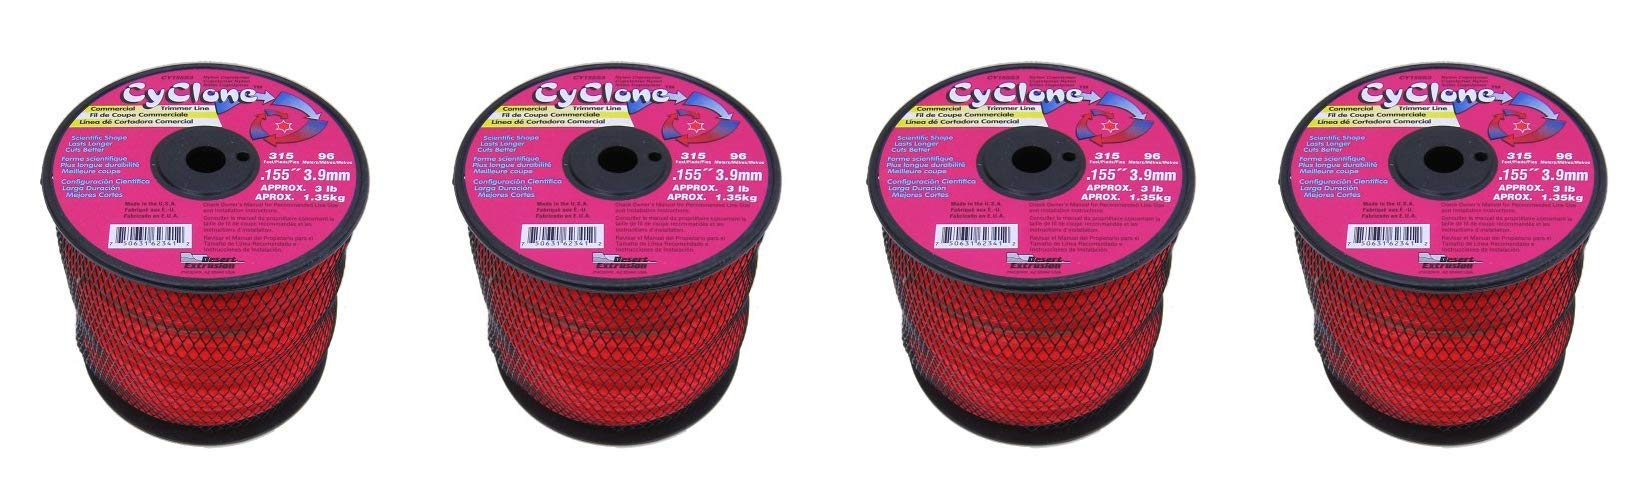 Cyclone .155-Inch-by-315-Foot Commercial Trimmer Line, Red CY155S3 (1, 4-Pack)